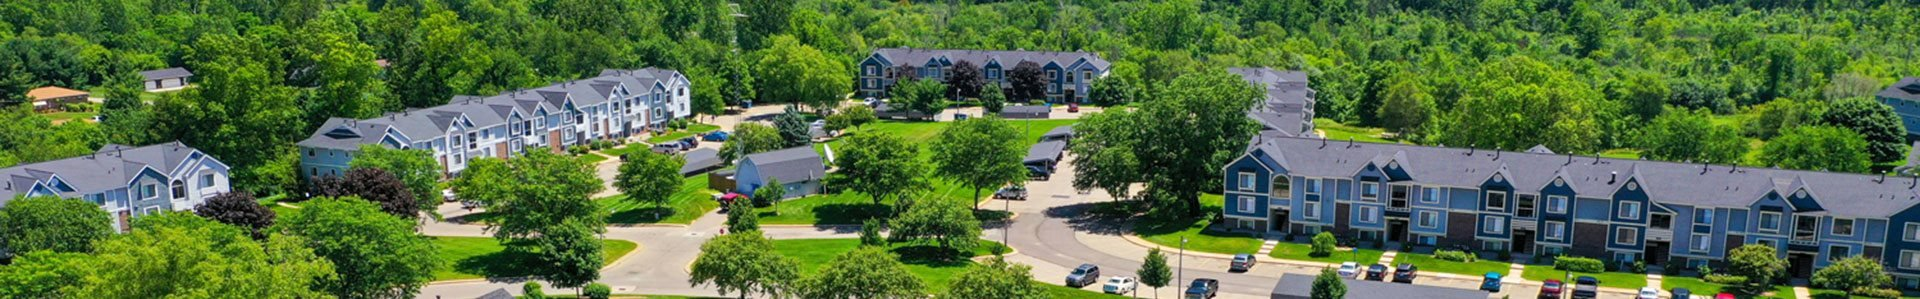 Acres of Greenery at Pine Knoll Apartments, 49014